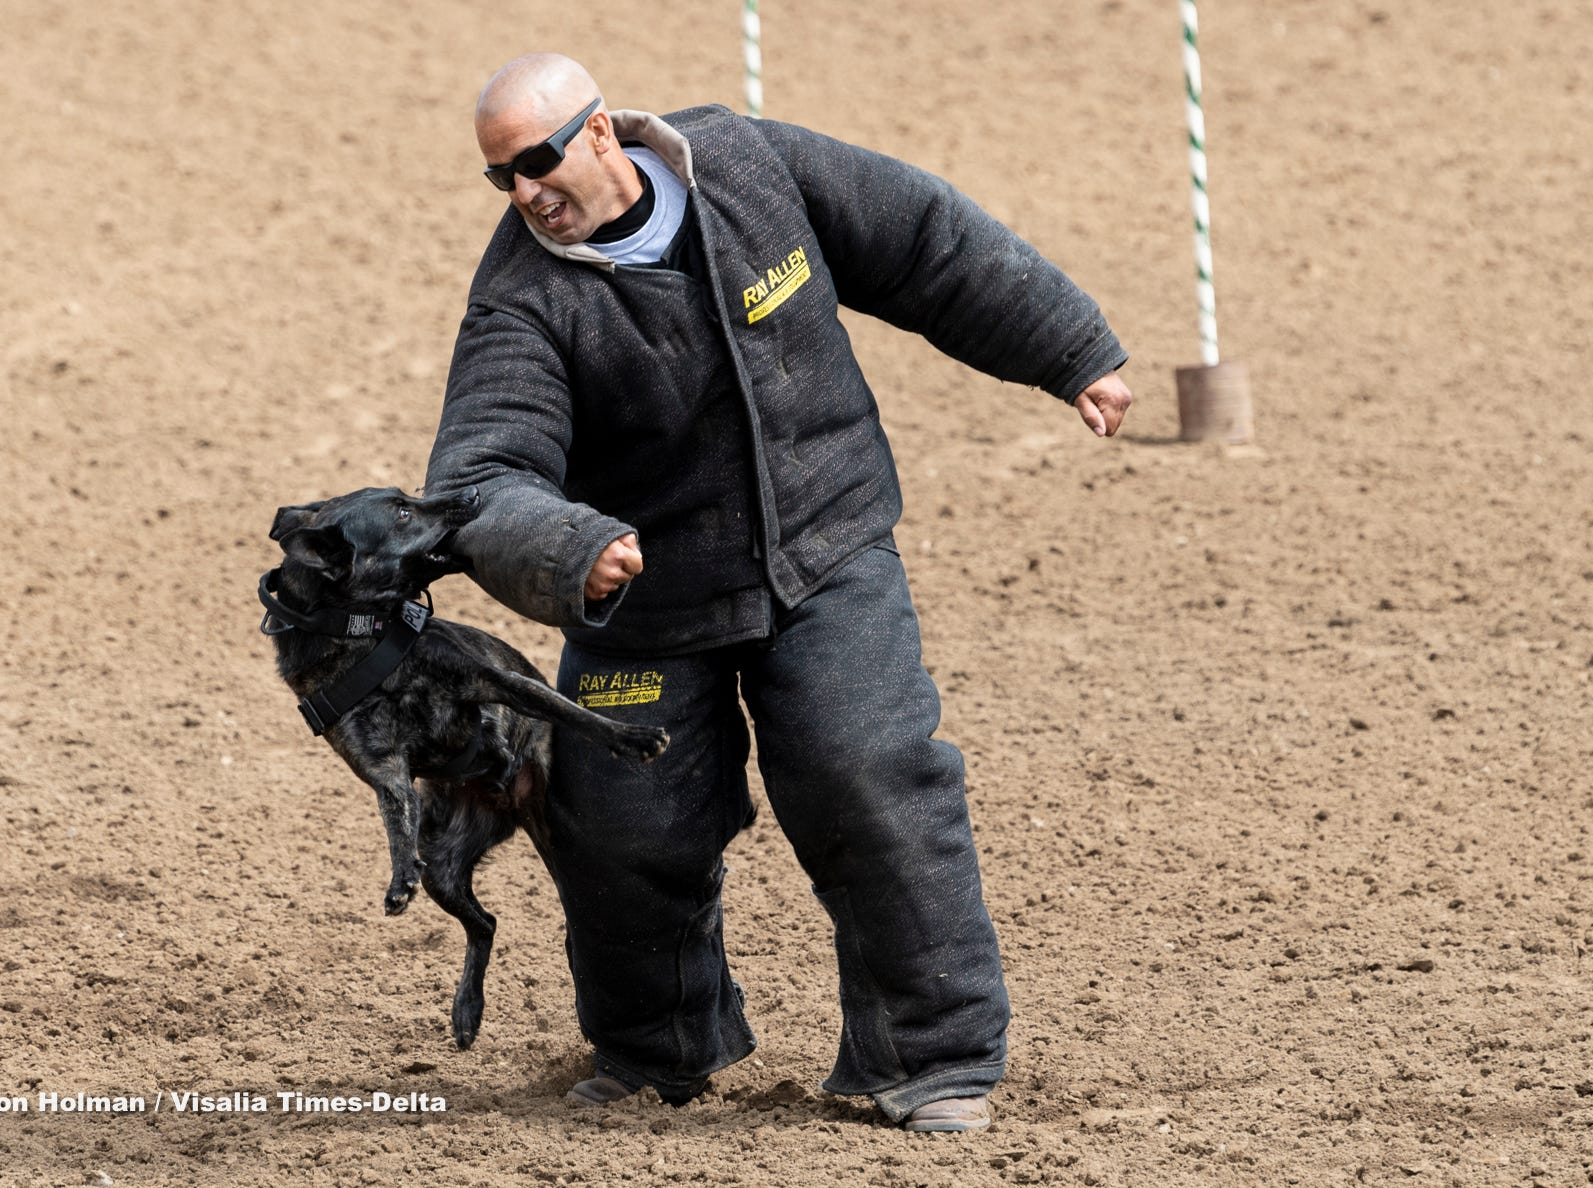 """Woodlake police K-9 Lea takes down a """"bad guy"""" for a demonstration during Woodlake Rodeo's first """"High-Five Rodeo"""" on Friday, May 10, 2019. Participants from Exeter's Center for Discovery and Learning were paired up with real-life cowboys and cowgirls and other performers to experience modified rodeo-related stations in the rodeo arena."""